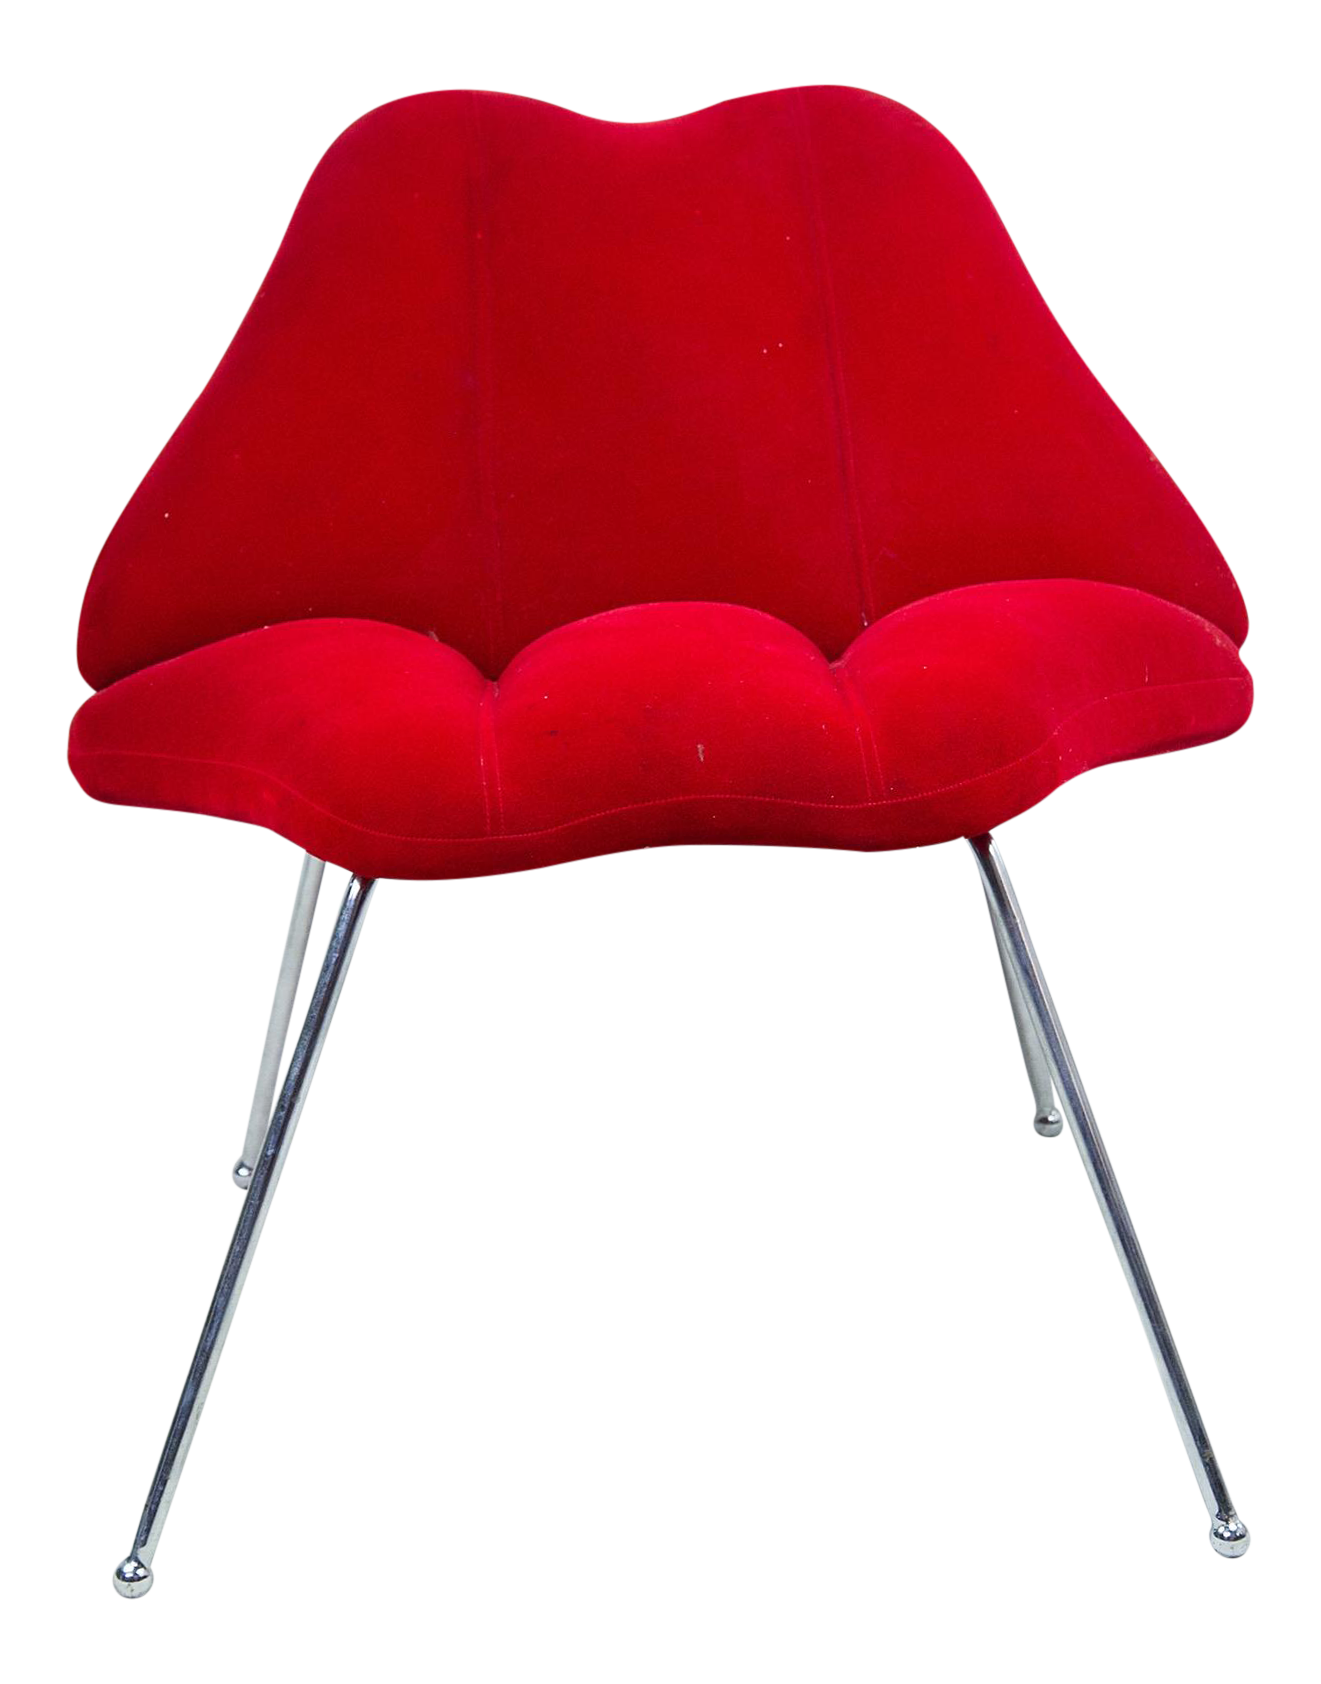 Red velvet chair - Red Velvet Chair 37